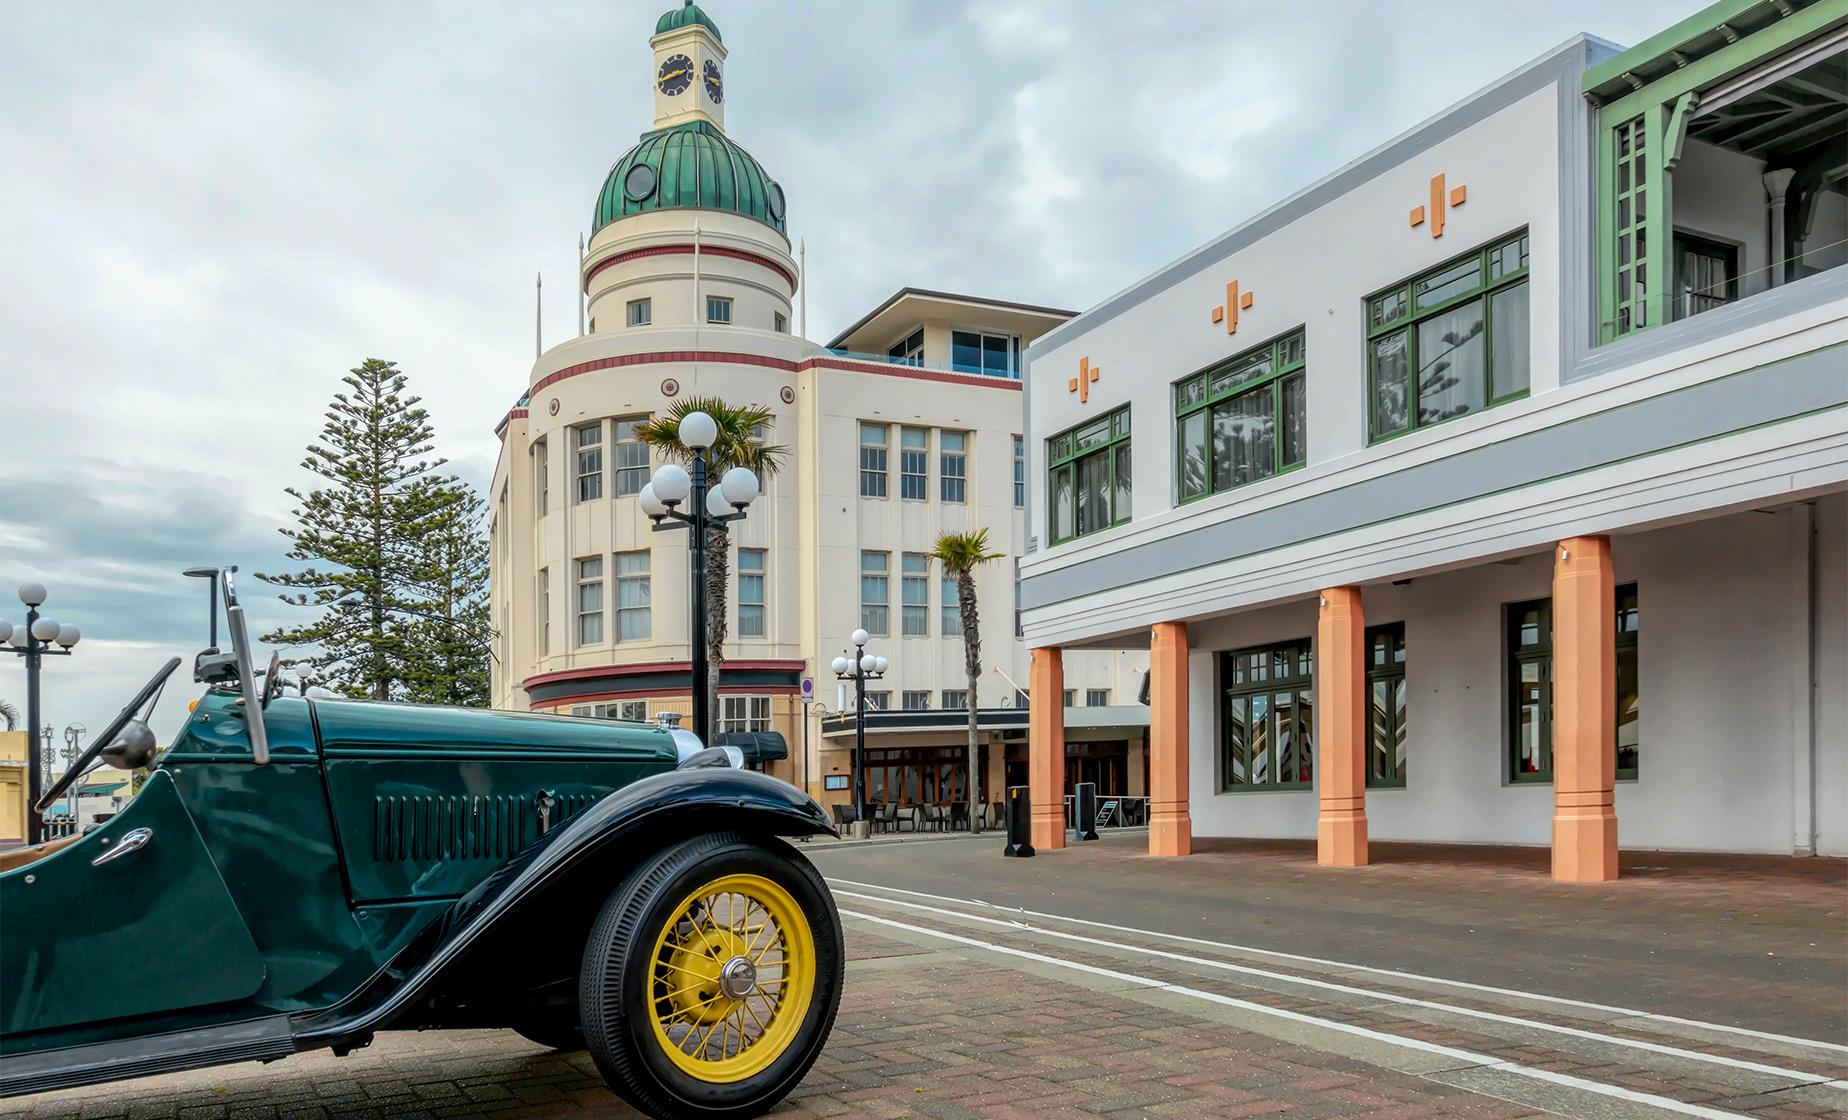 Private 3 Hour Tour of Napier with Optional Classic Car